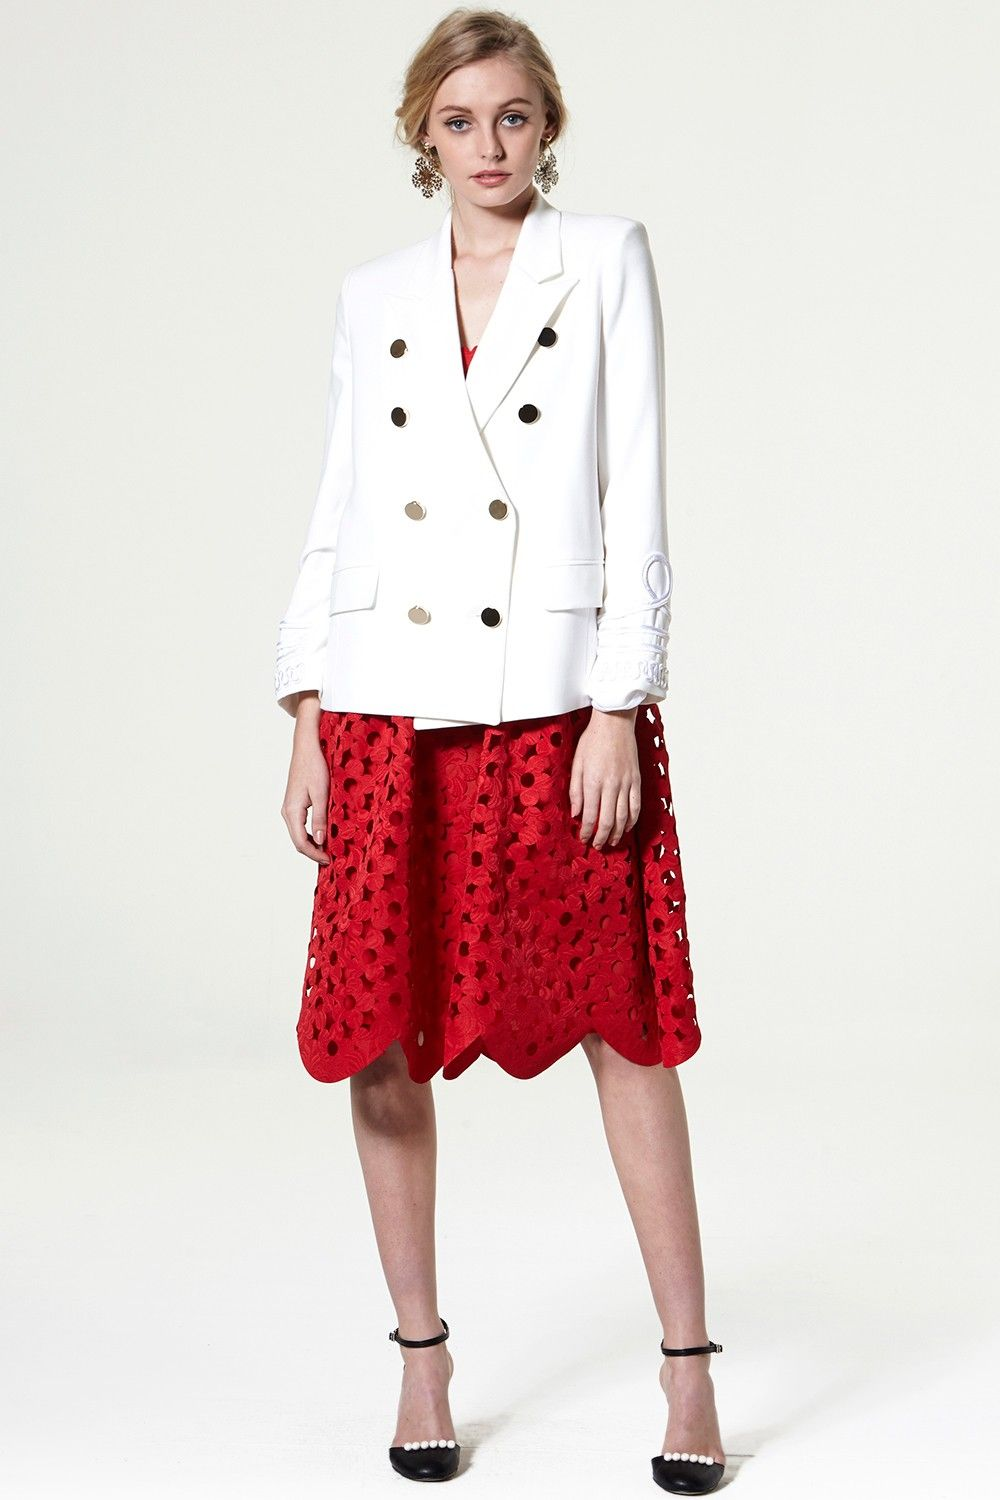 Phantom Embellished Blazer - What's new Discover the latest ...